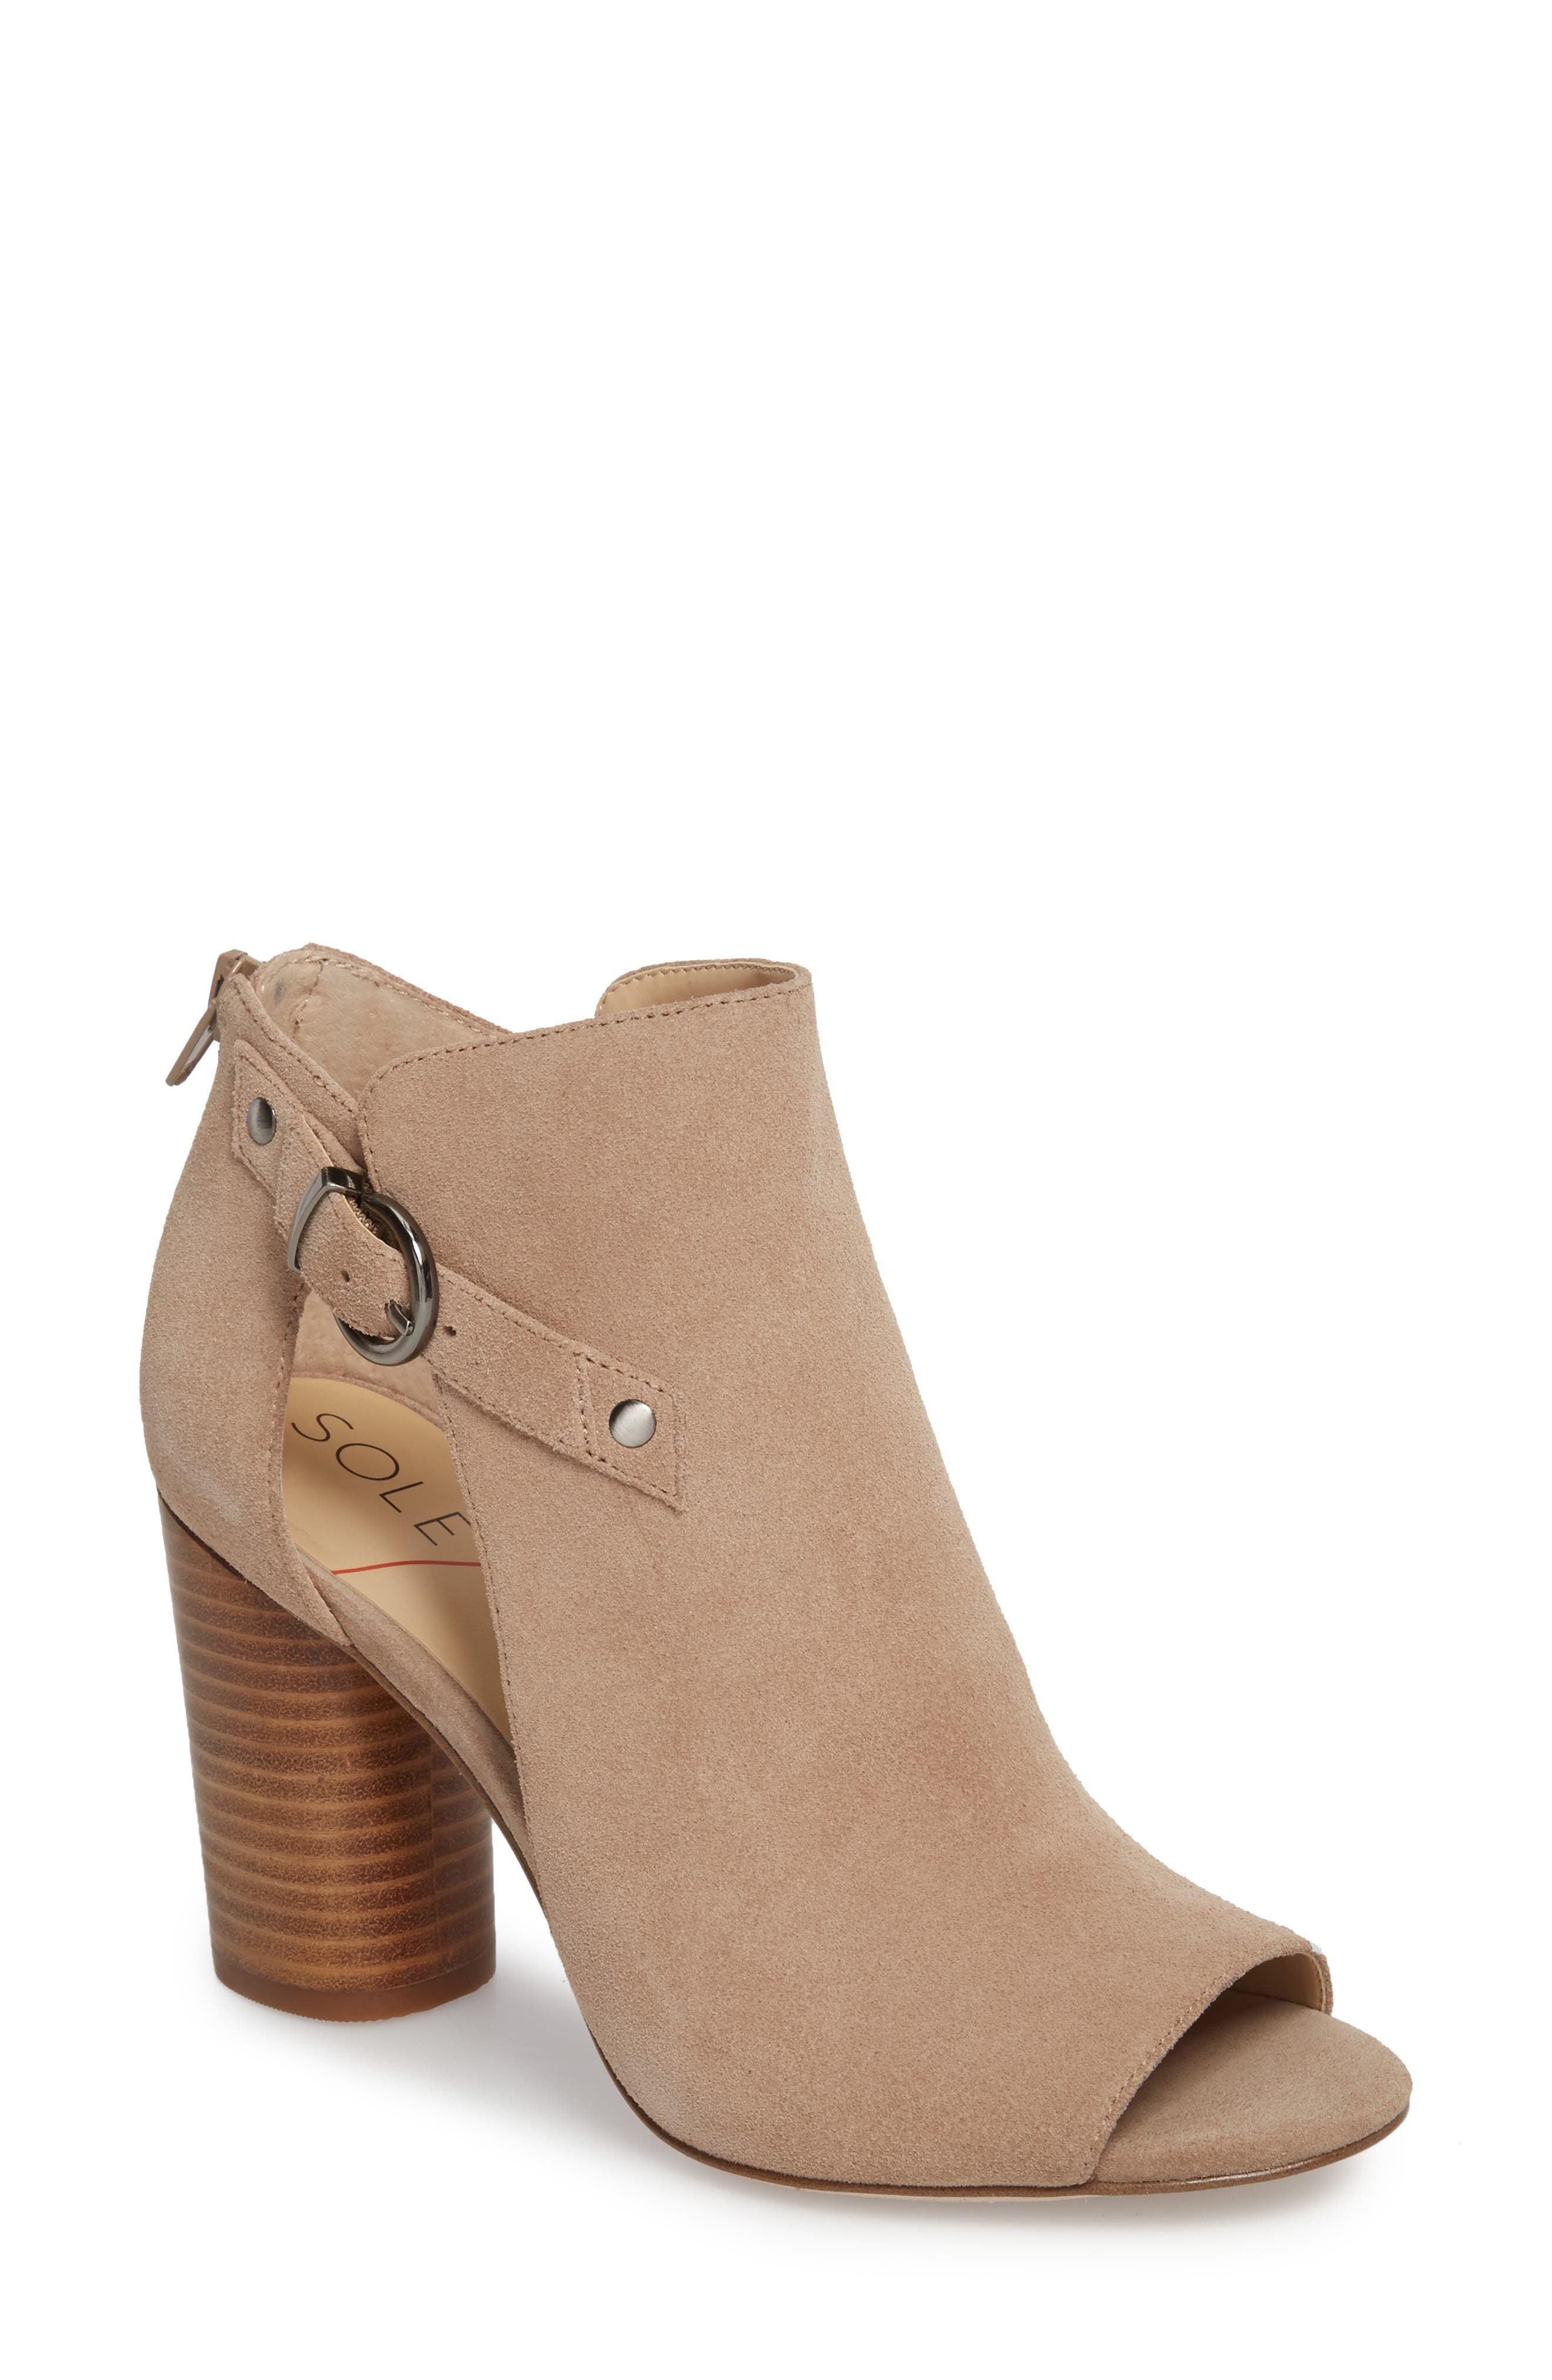 Sally Column Heel Sandal,                             Main thumbnail 1, color,                             Warm Taupe Cow Suede